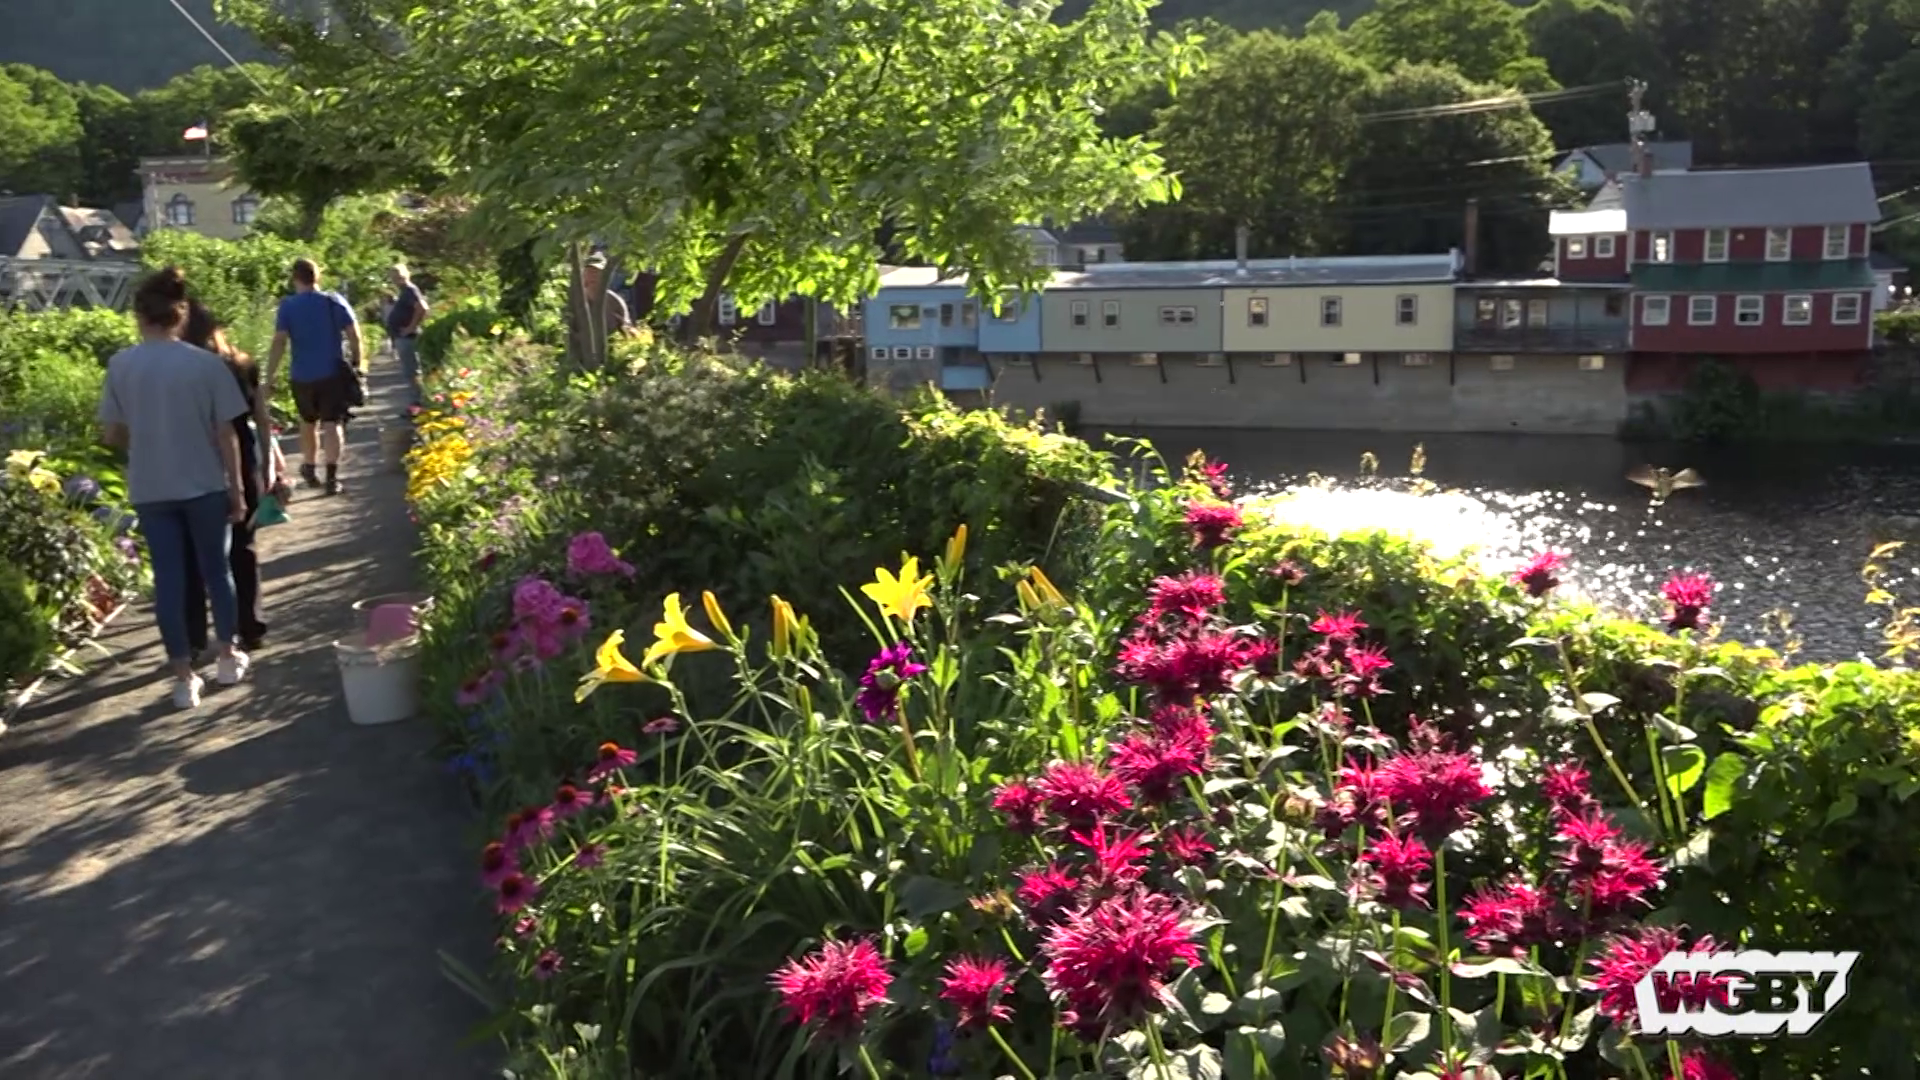 Learn how an unused trolley bridge connecting Shelburne Falls and Buckland, MA became a public garden experience known as the Bridge of Flowers.